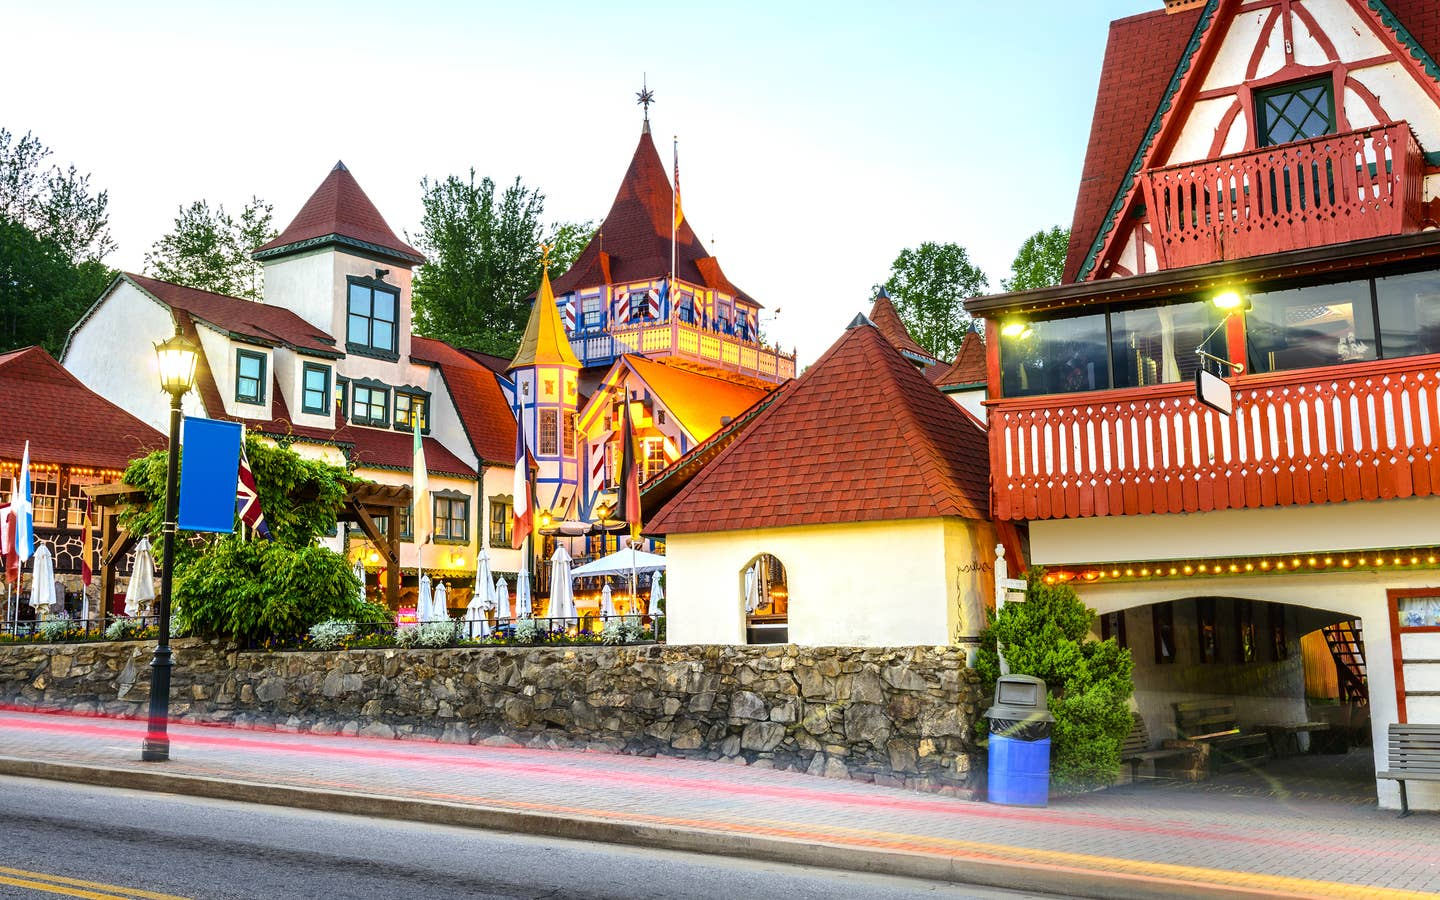 Bavarian-inspired architecture in Downtown Helen, Georgia.